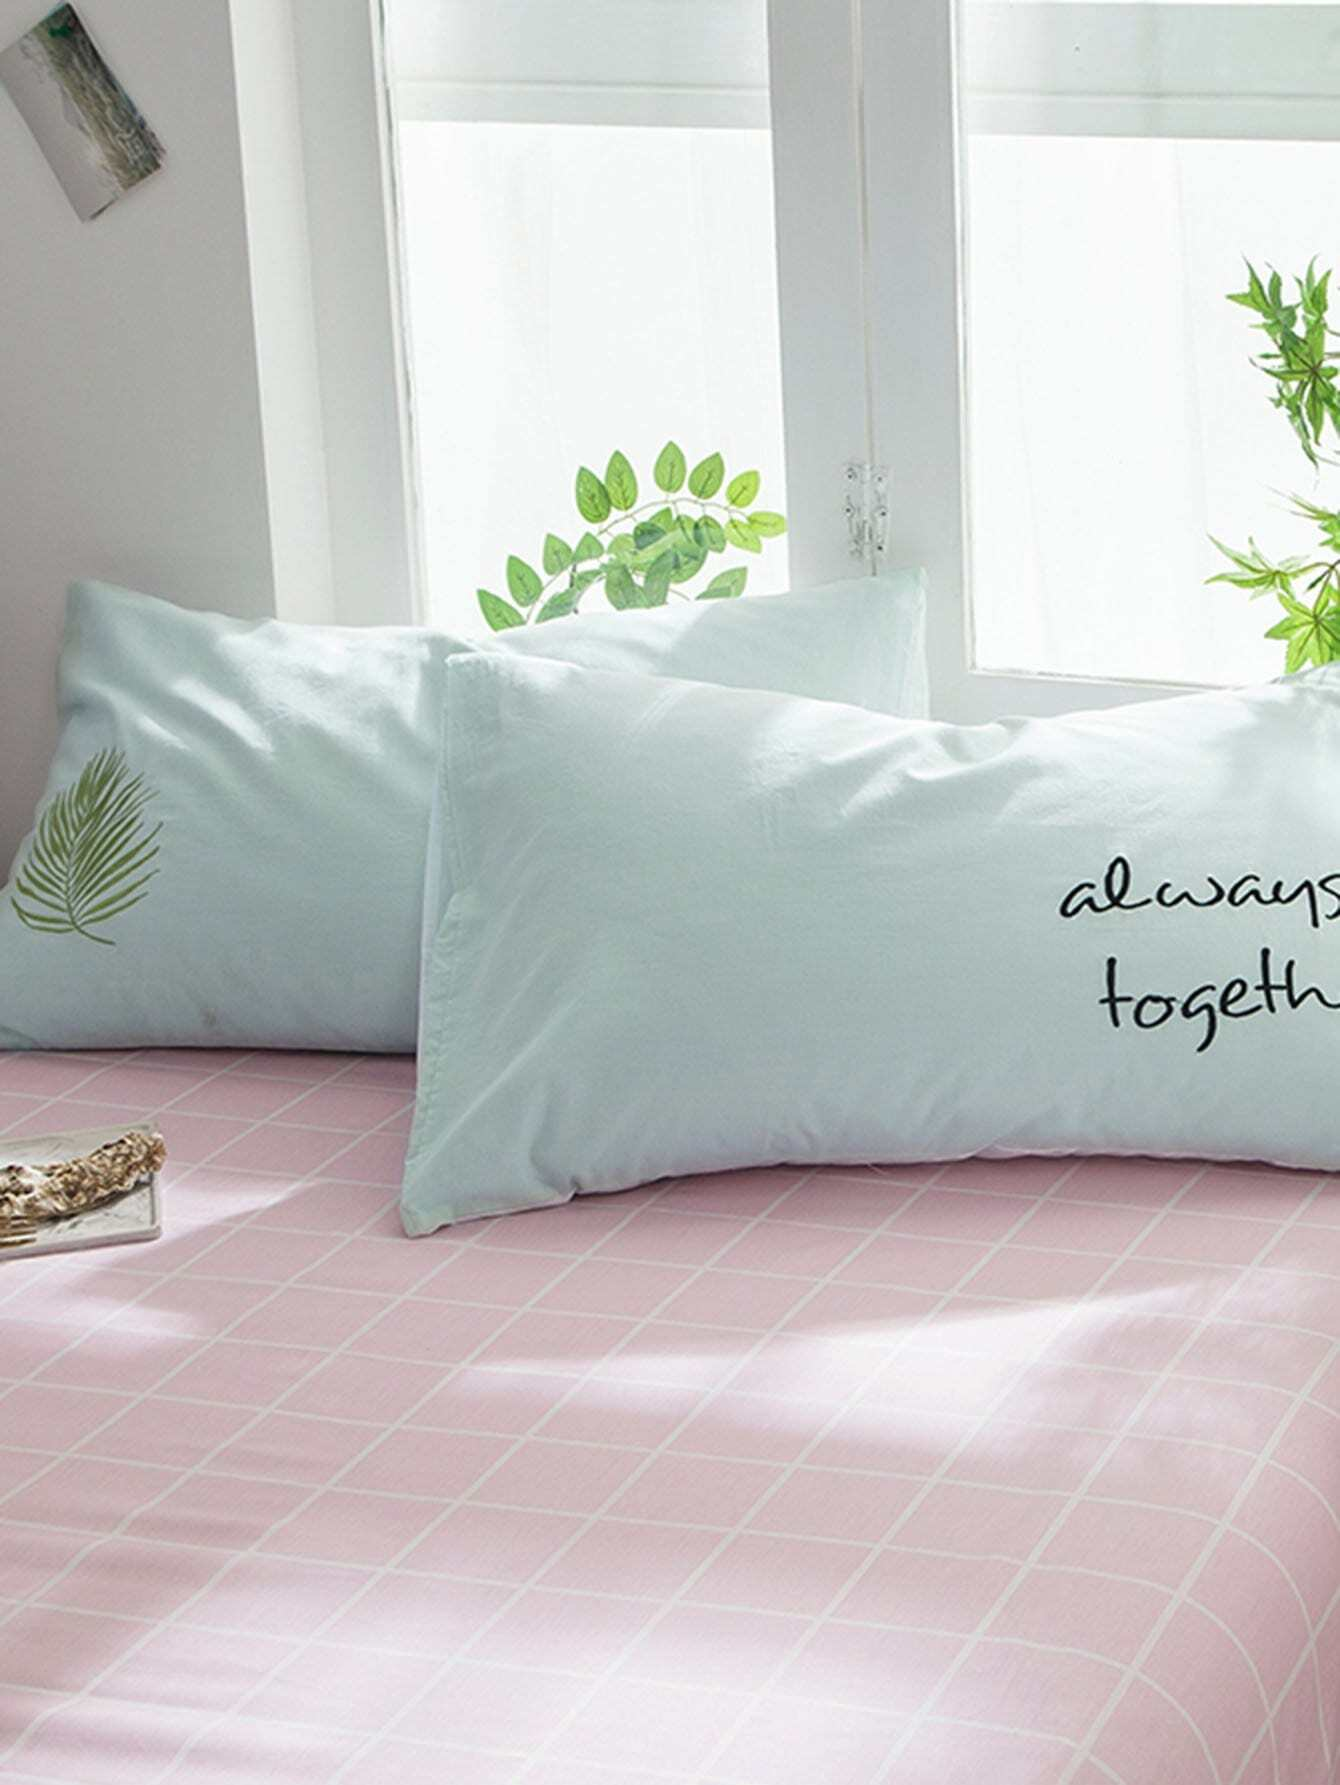 Leaf & Letter Print Pillowcase Cover